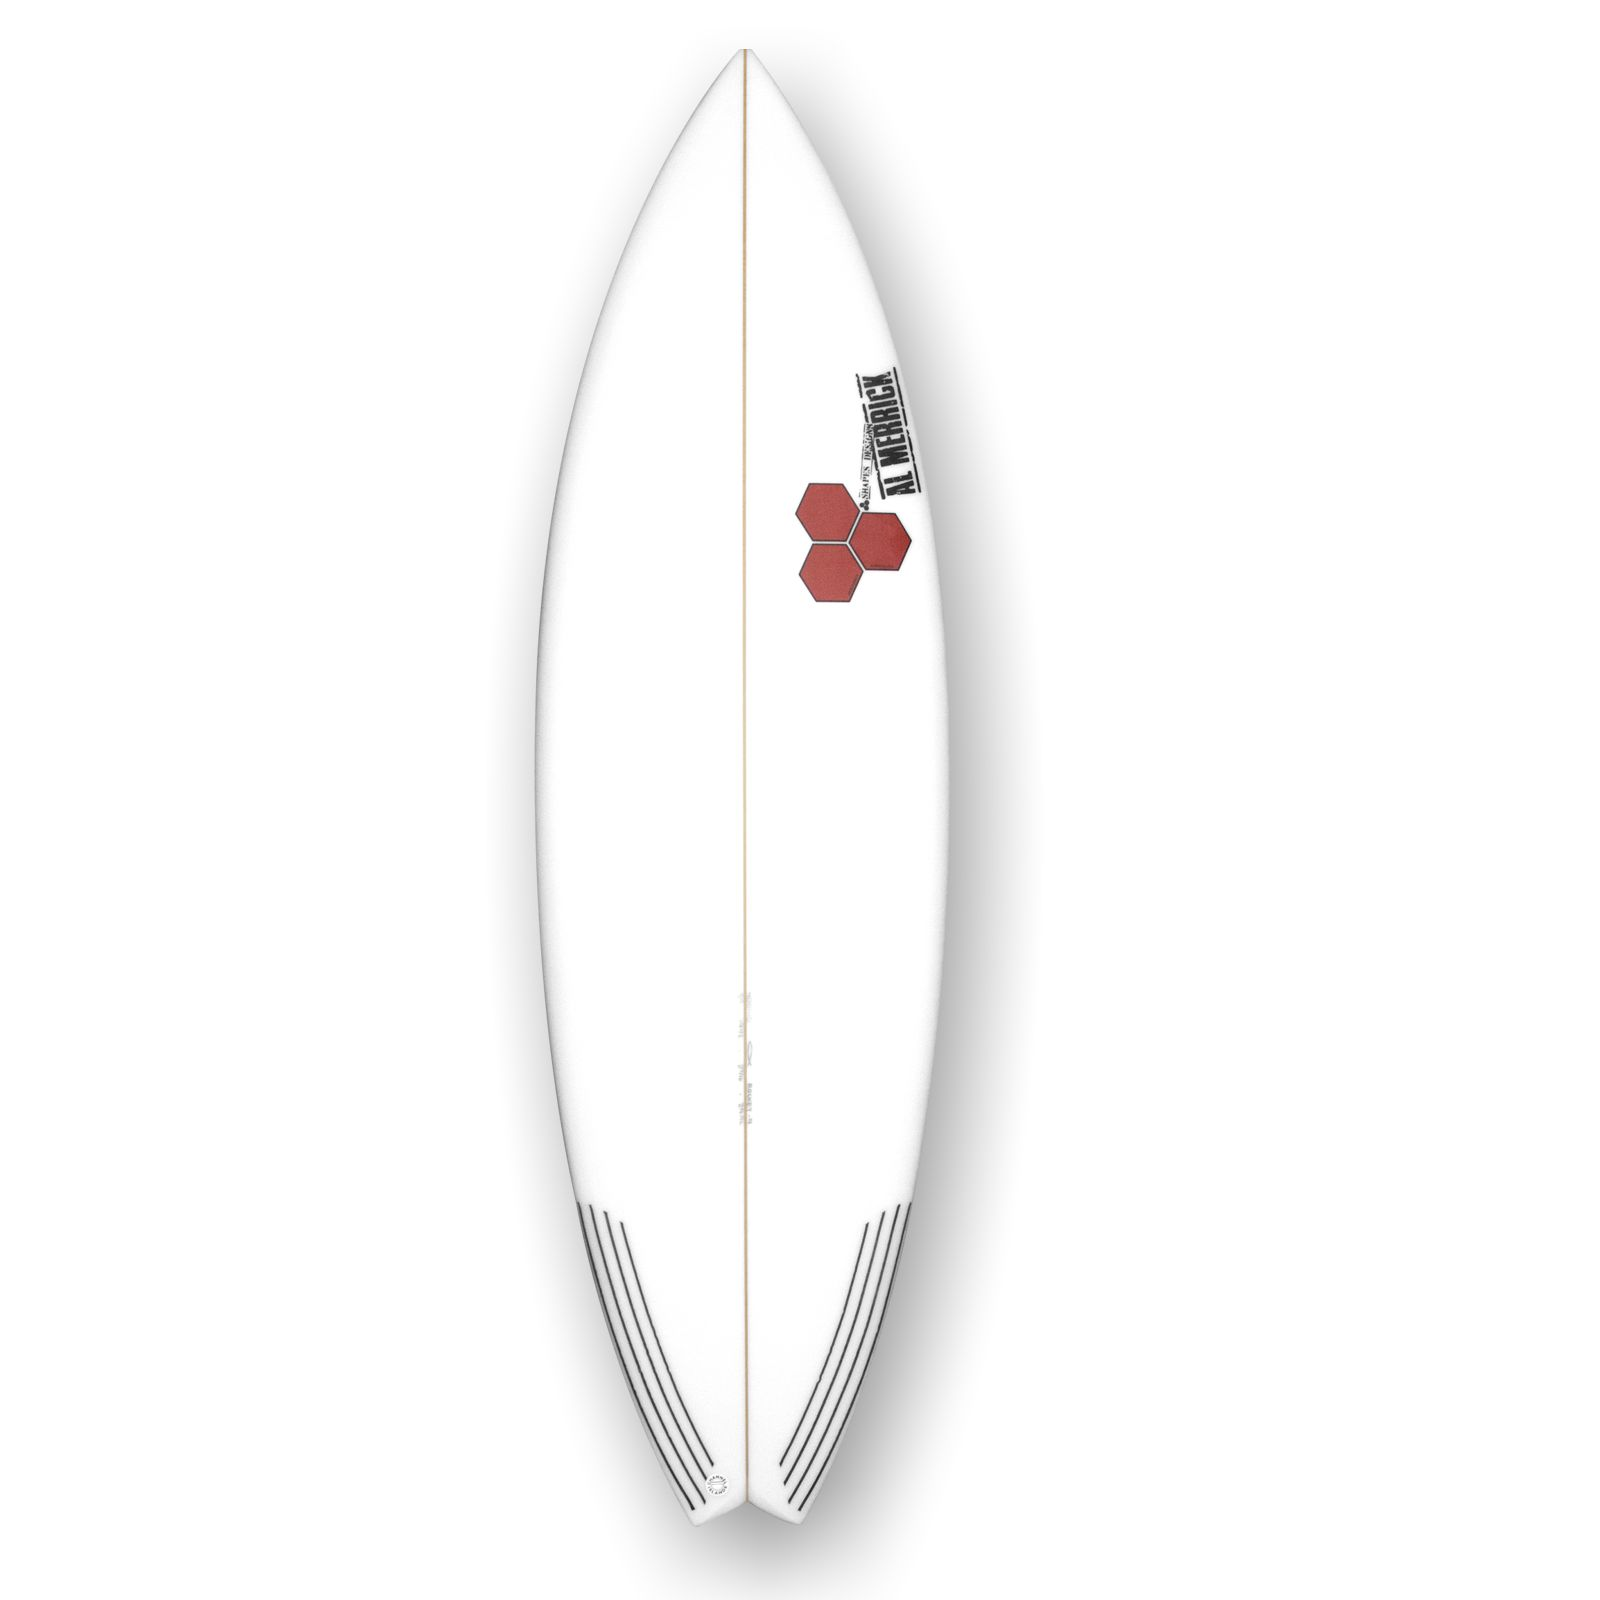 Surfboard CHANNEL ISLANDS Rocket 9  5.10